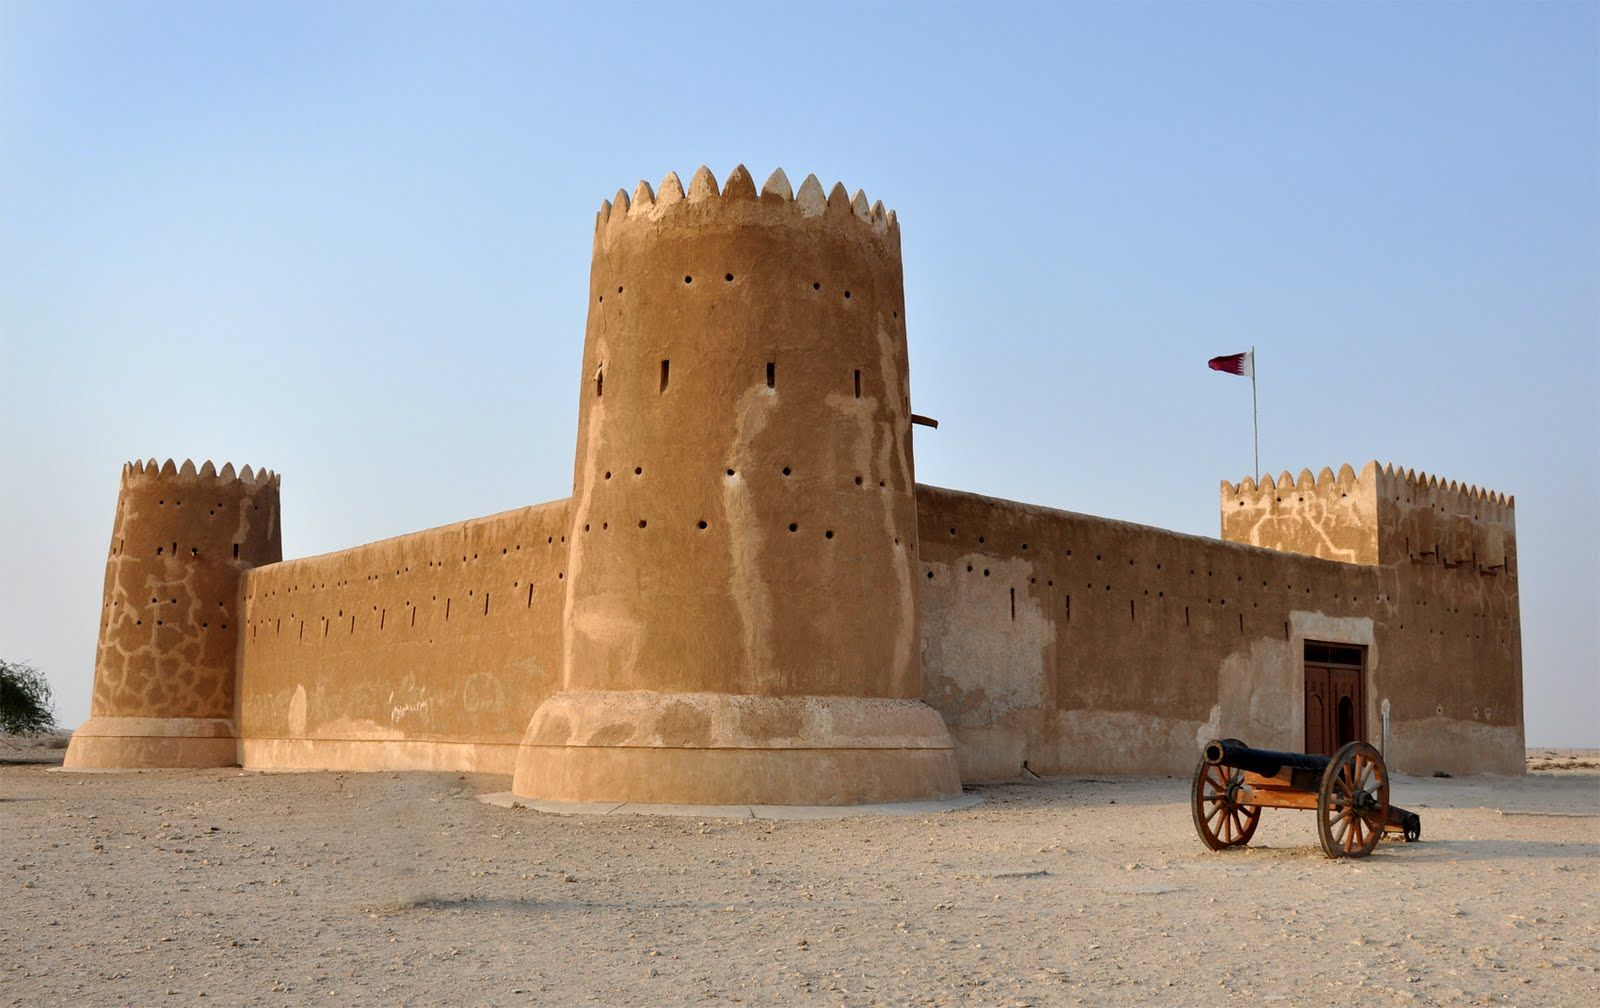 Zubara Fort Qatar The Zubarah Fort Is Situated In The Antique Yet Chronological Town Of Zubarah Which In Turn Is Located On The Nort Qatar Travel Doha Qatar